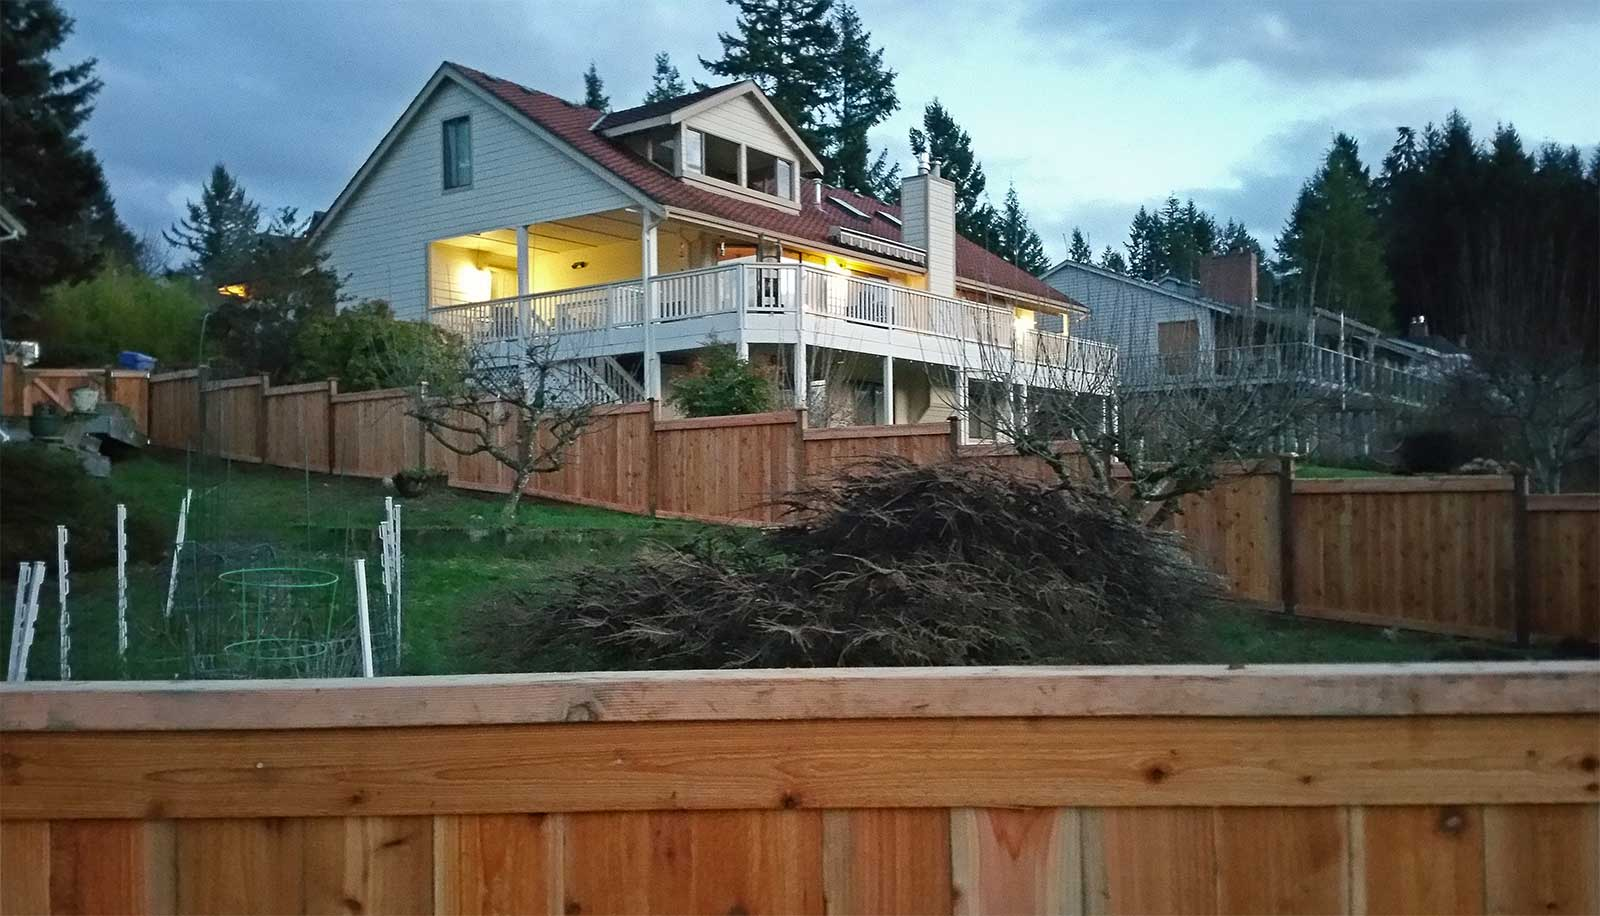 This step-down fence in Steilacoom maintains a level surface on the top while confirming to the grade of the hill.